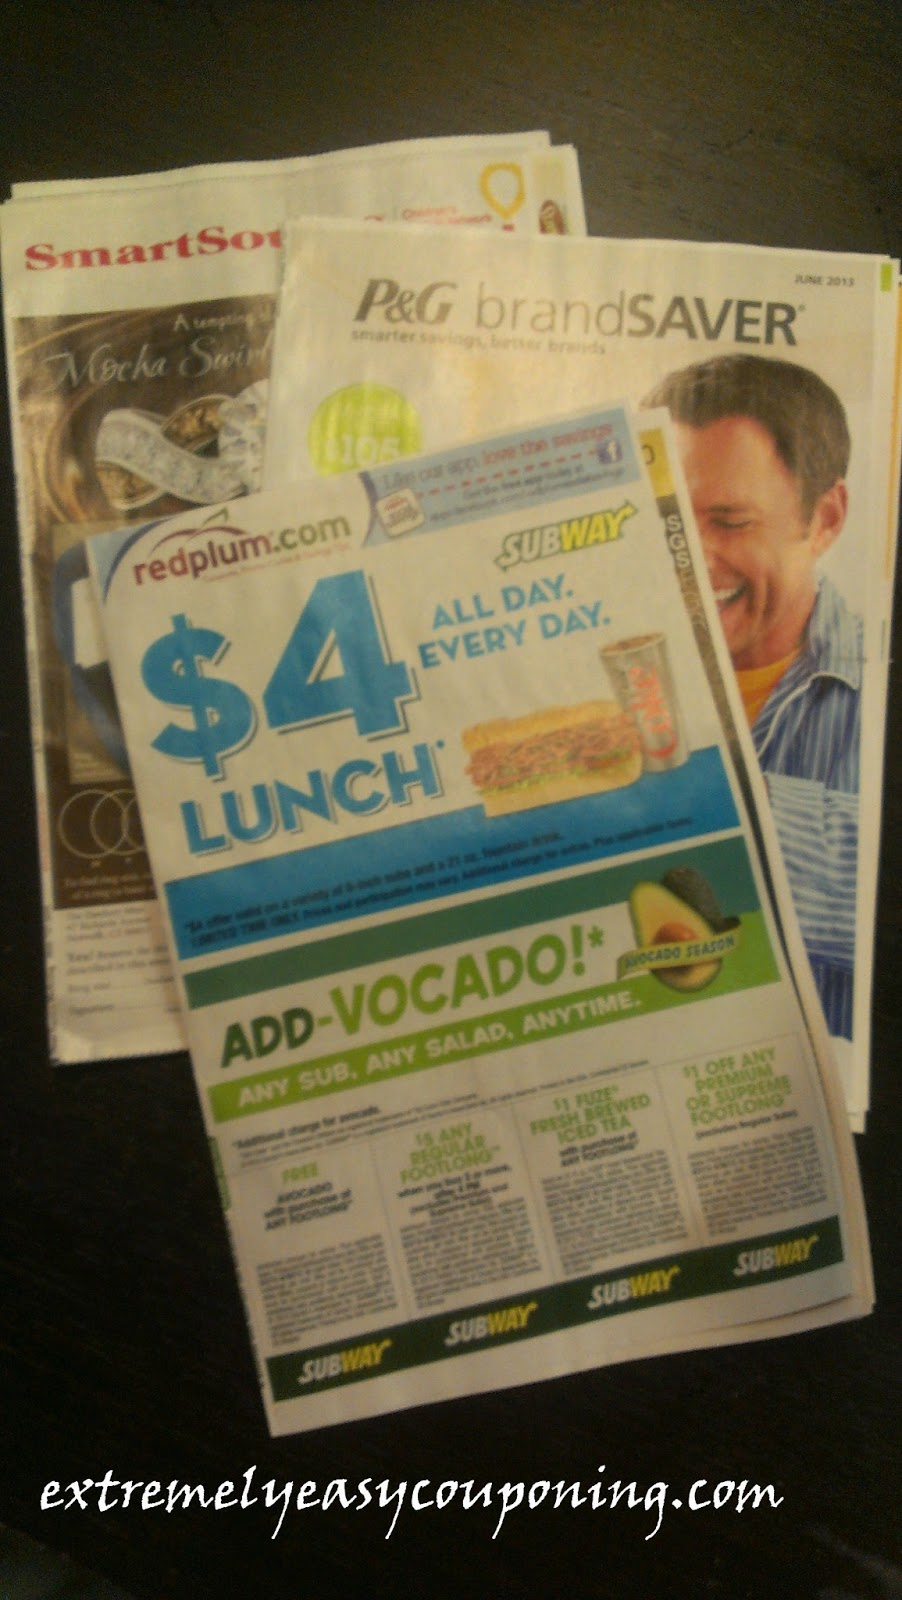 Extremely Easy Couponing: 3 Sunday Coupon Inserts today